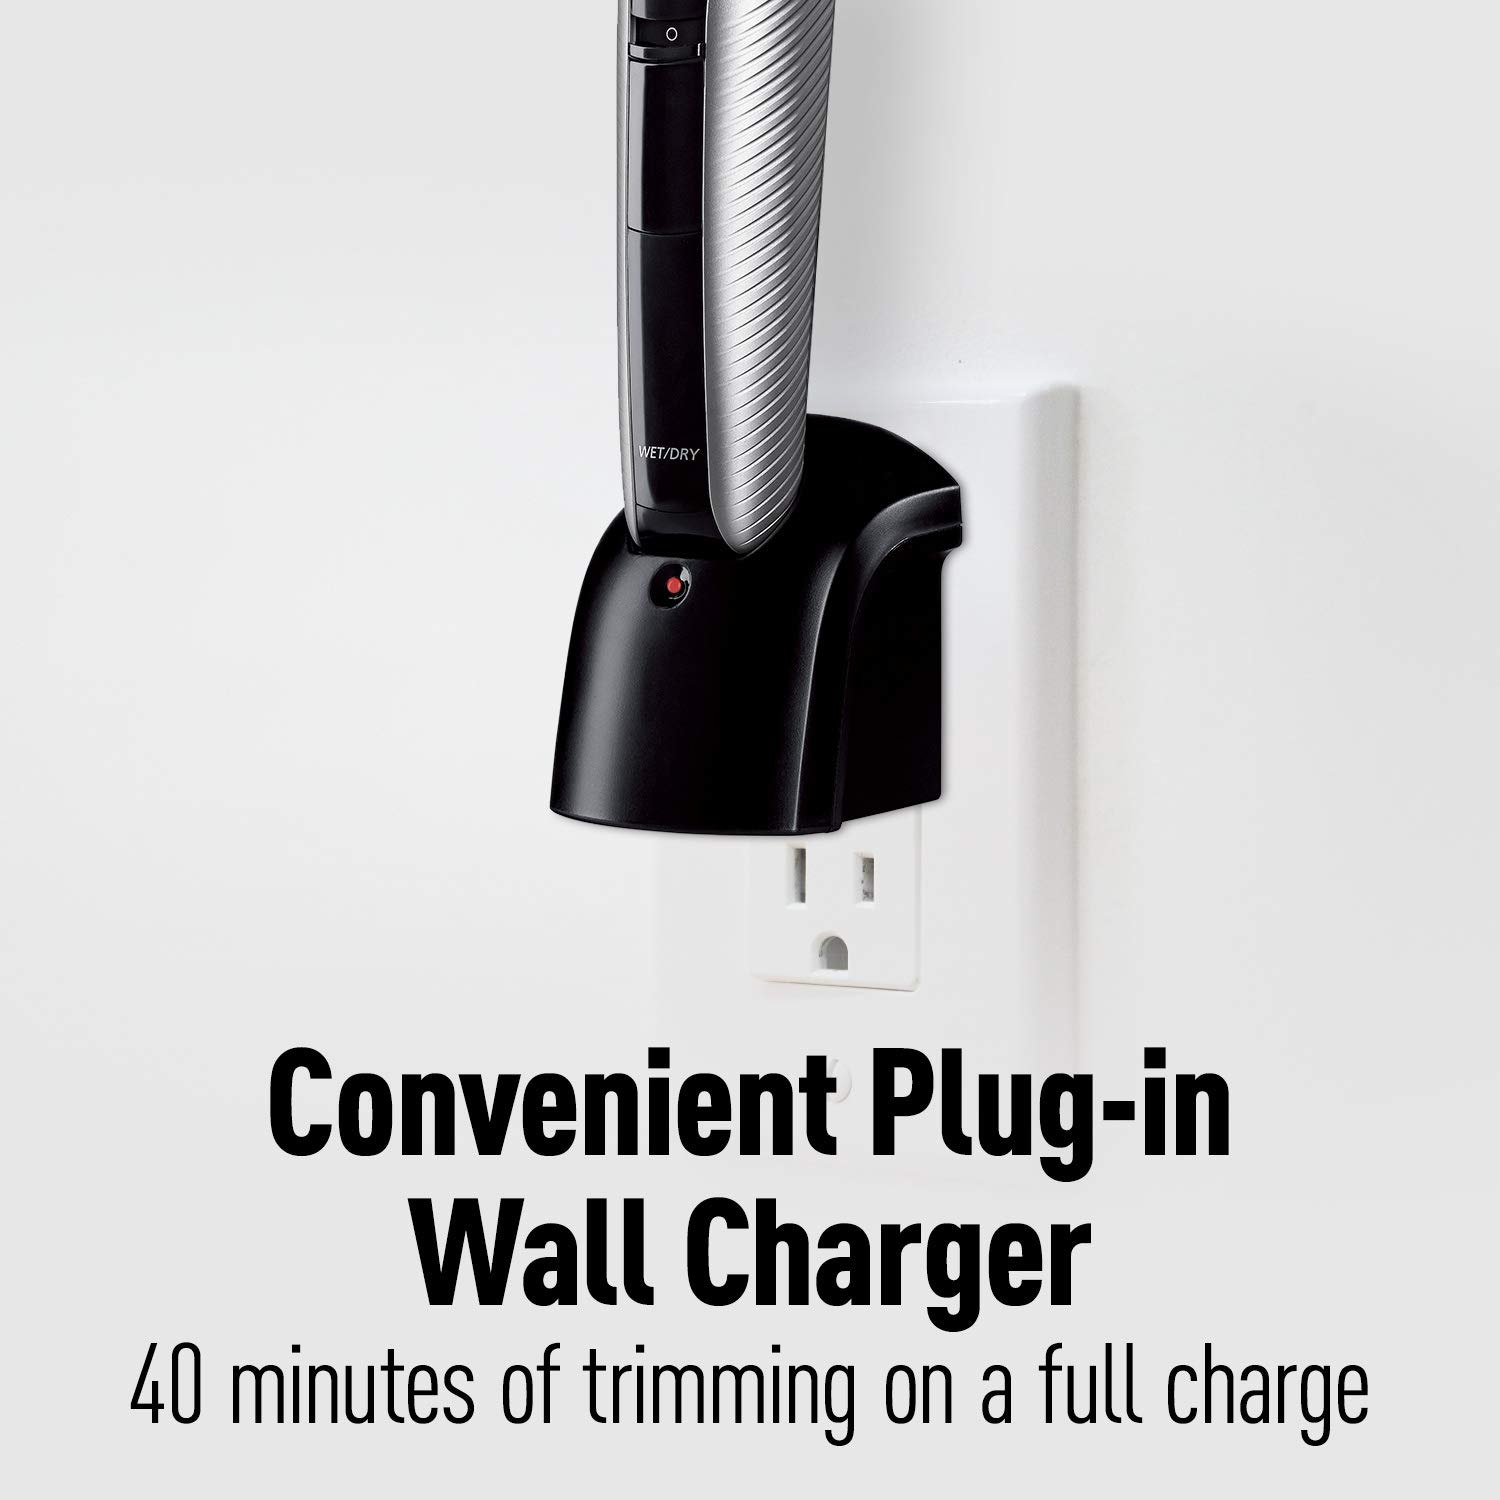 Panasonic Cordless Electric Body Hair Trimmer with Waterproof Design, ER-GK60-S by Panasonic (Image #6)